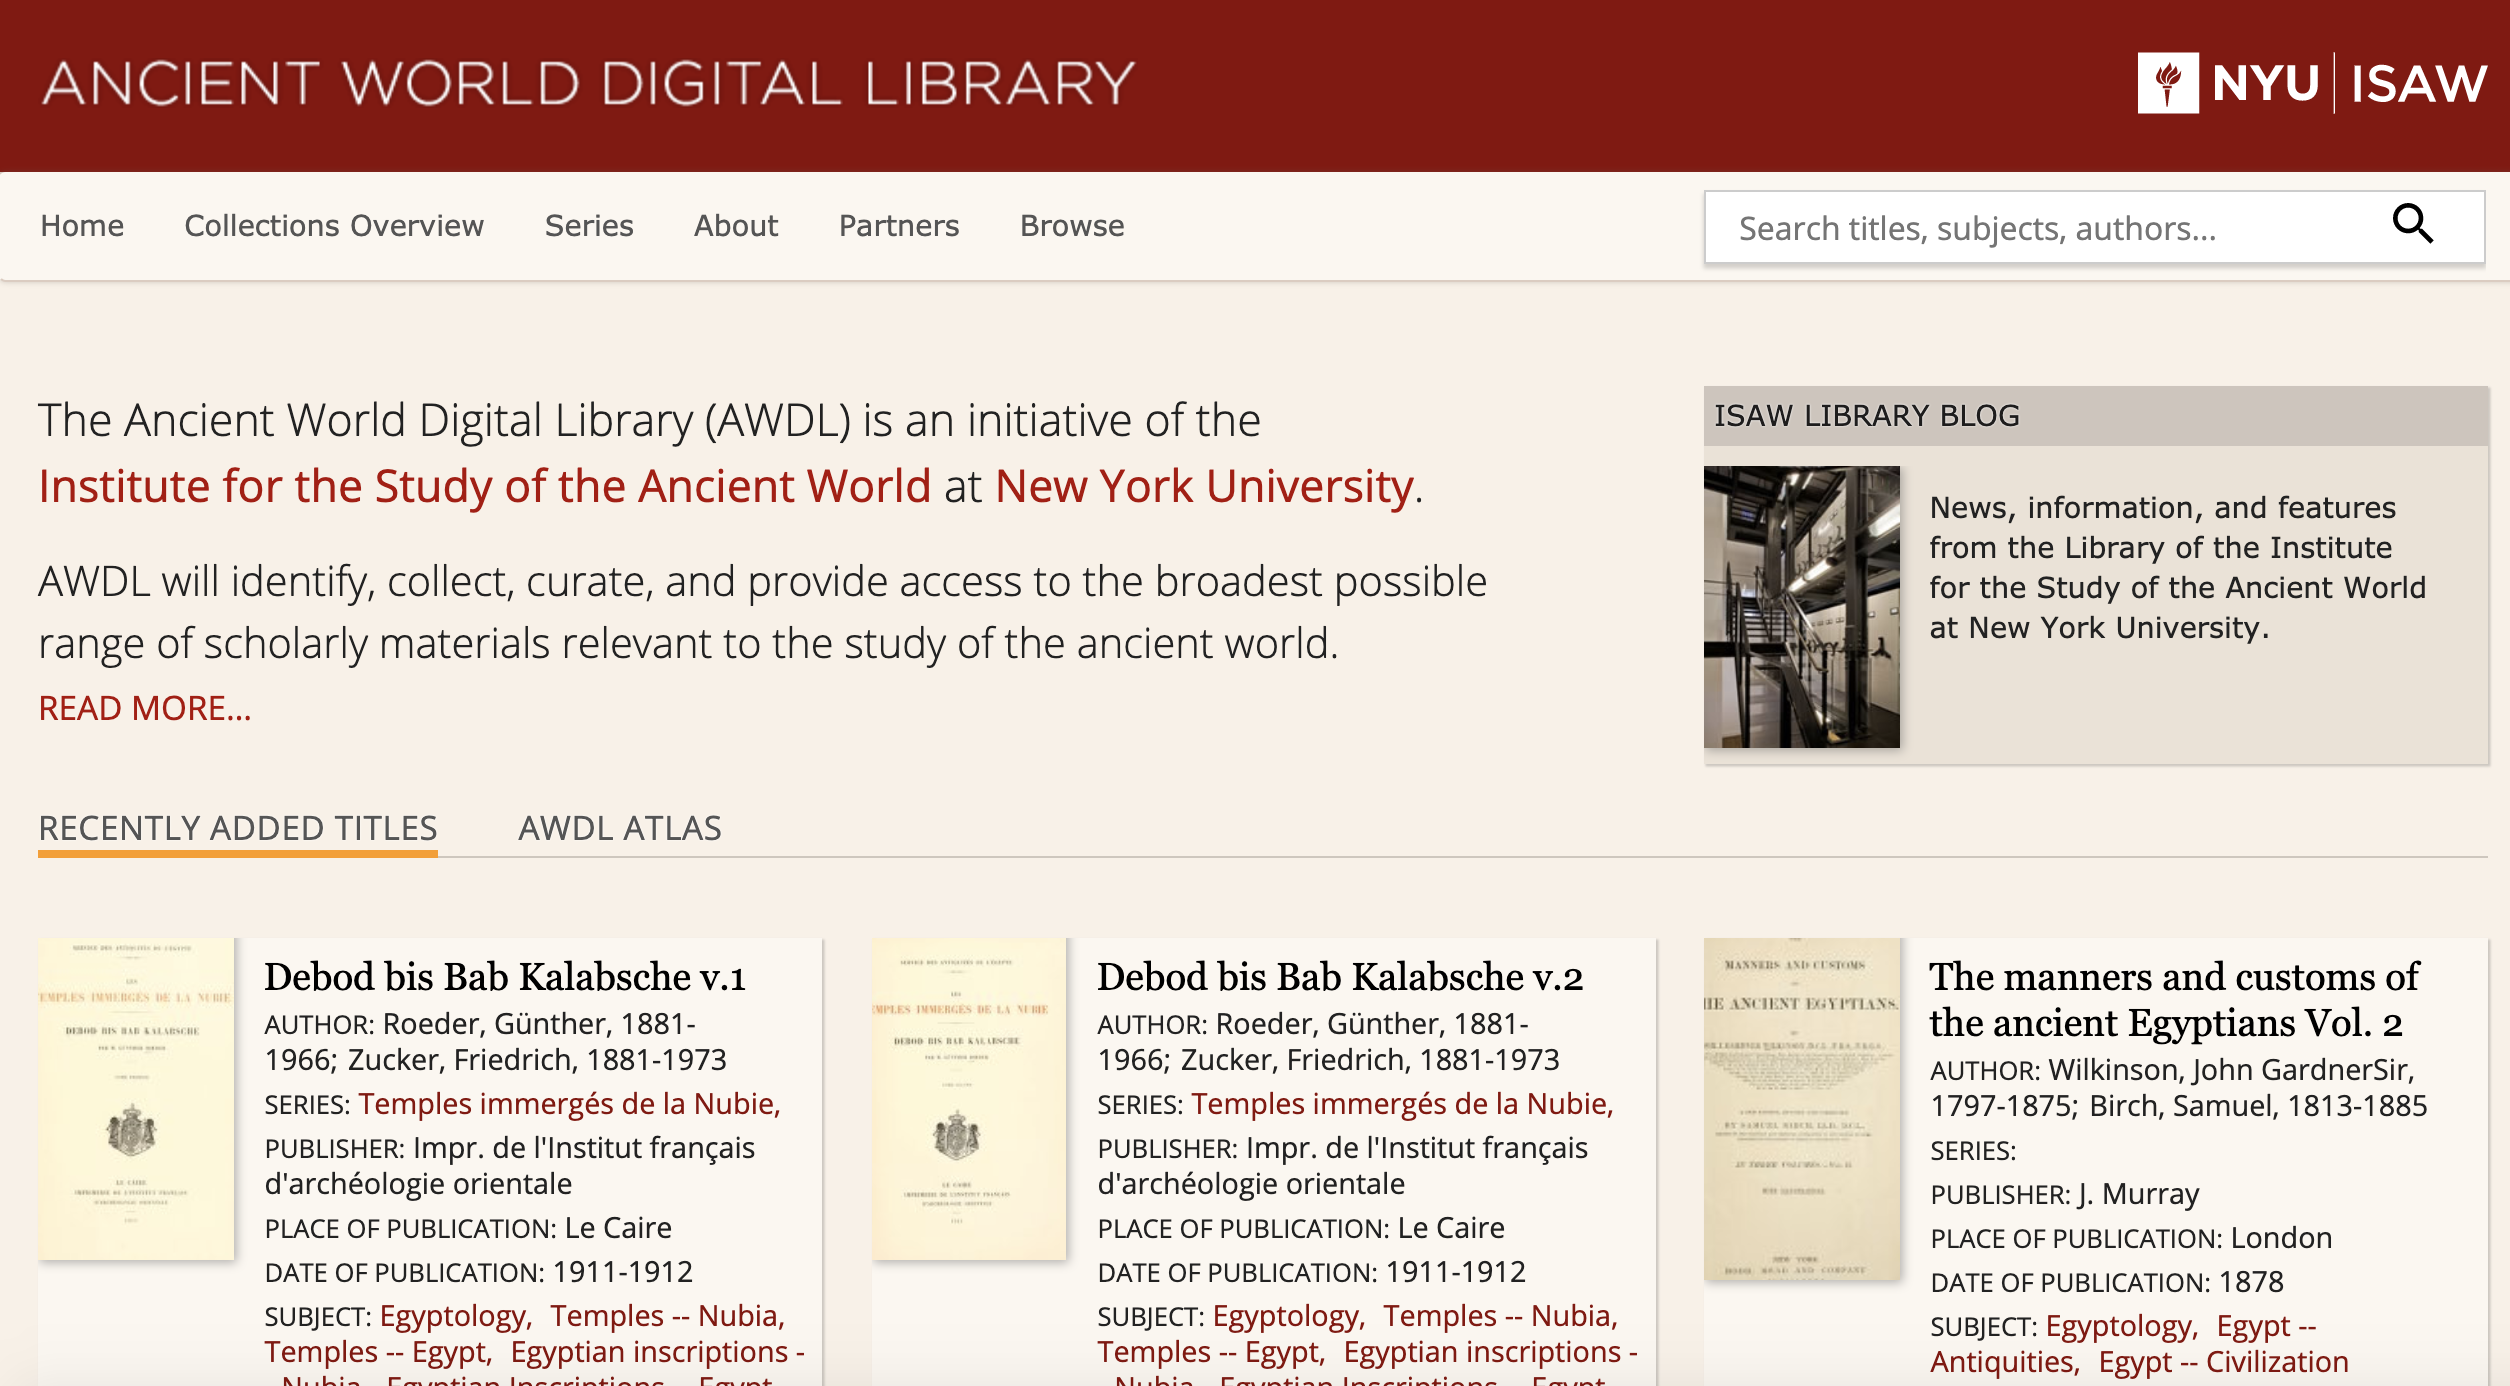 Sharing AWDL Records Across Institutions